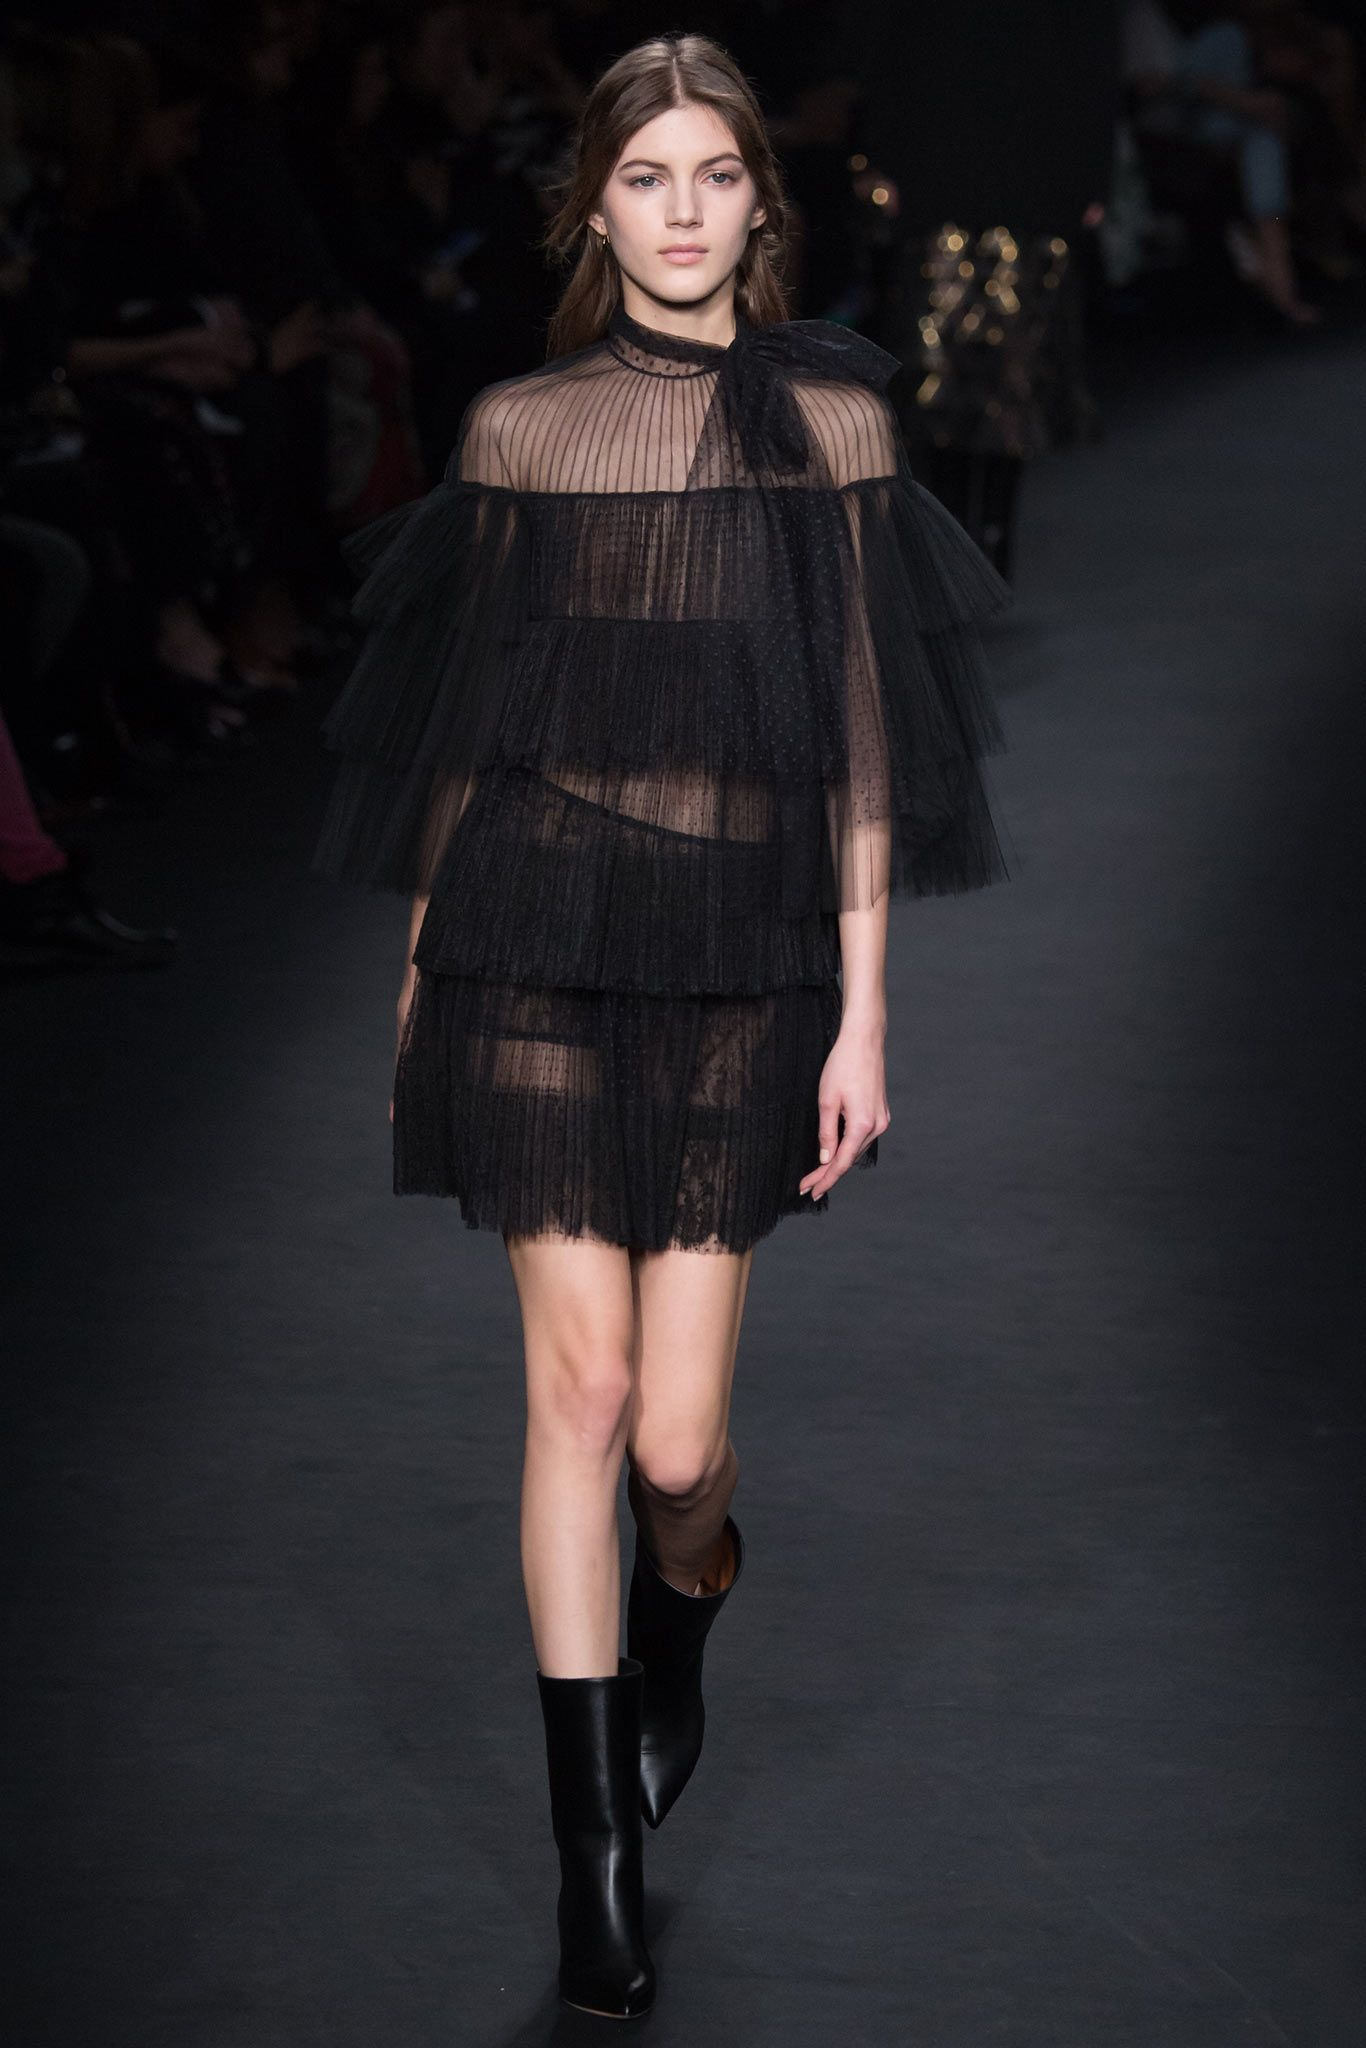 Valentino - Fall 2015 Ready-to-Wear - Look 45 of 84?url=http://www.style.com/slideshows/fashion-shows/fall-2015-ready-to-wear/valentino/collection/45